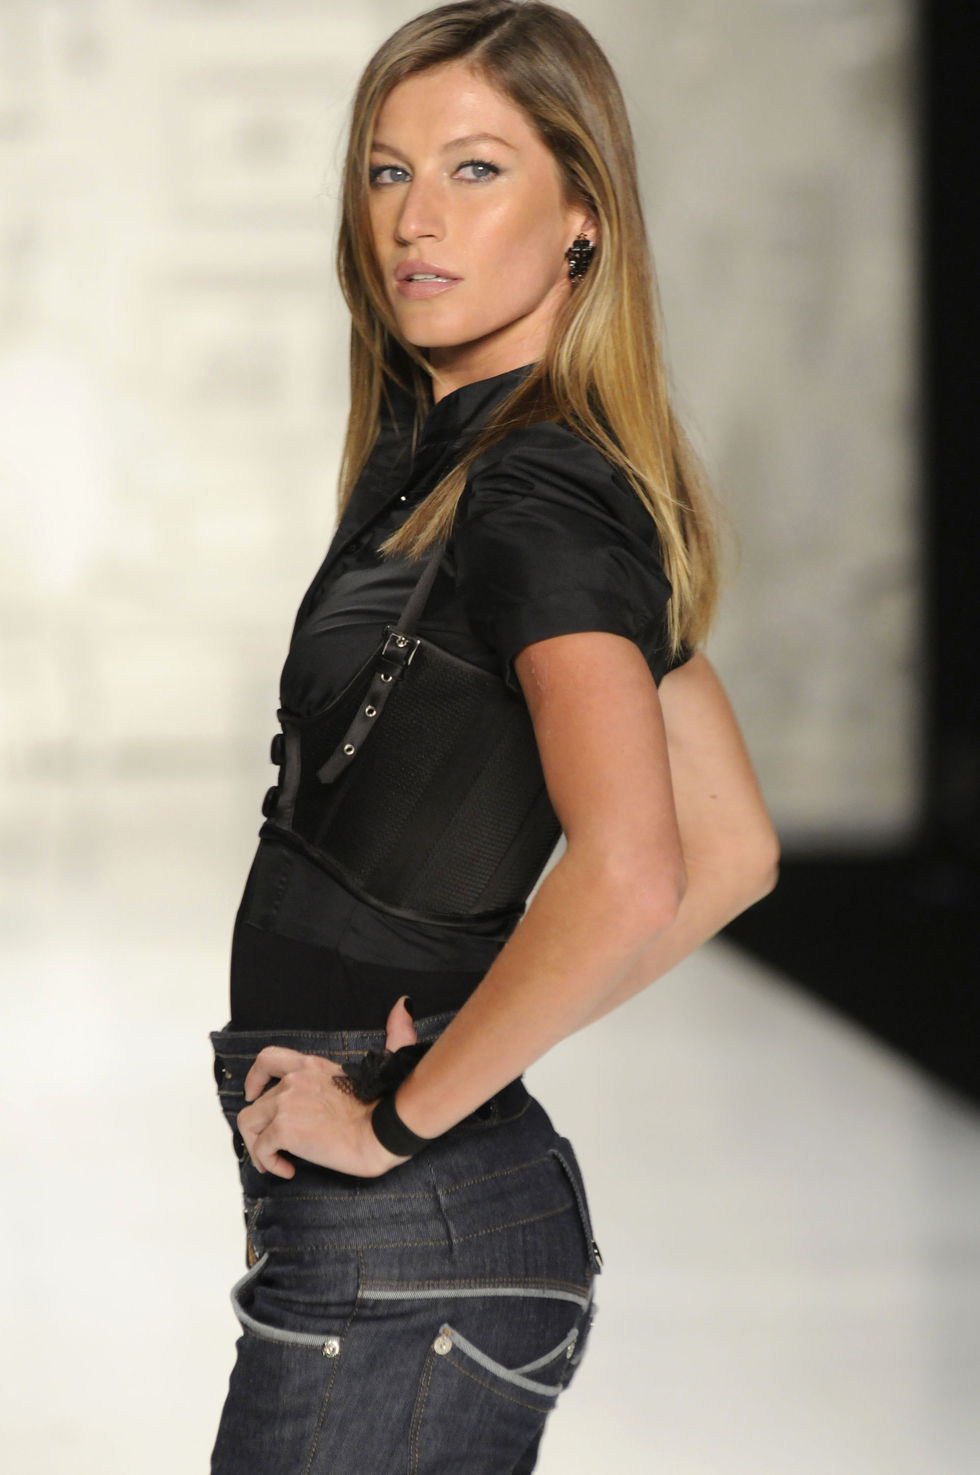 gisele-bundchen-colcci-winter-2009-show-at-sao-paulo-fashion-week-01